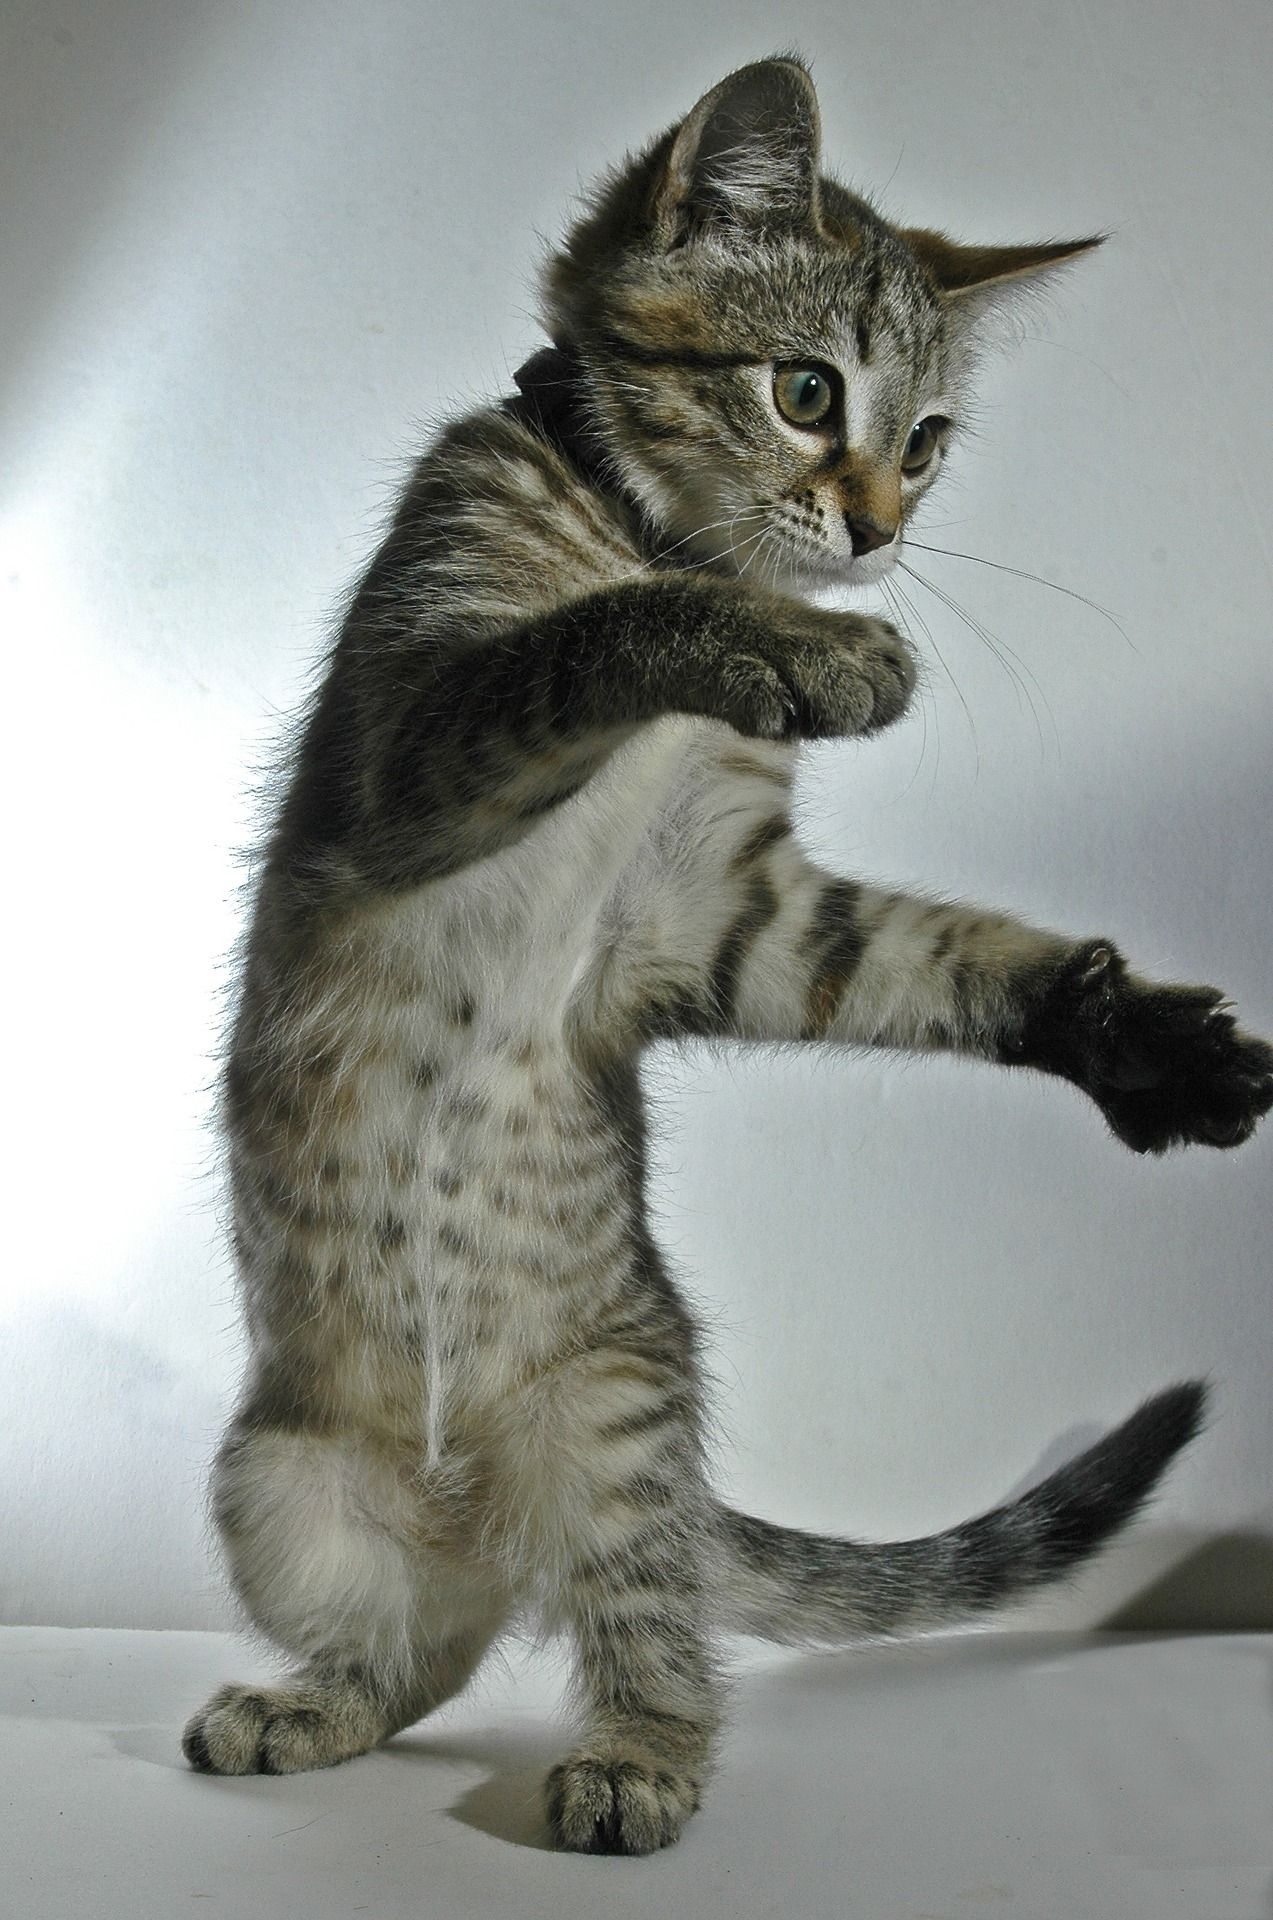 Kitten S Ballroom Dancing Prowess Stuns Judges At Dancing Cat Cats And Kittens Cats